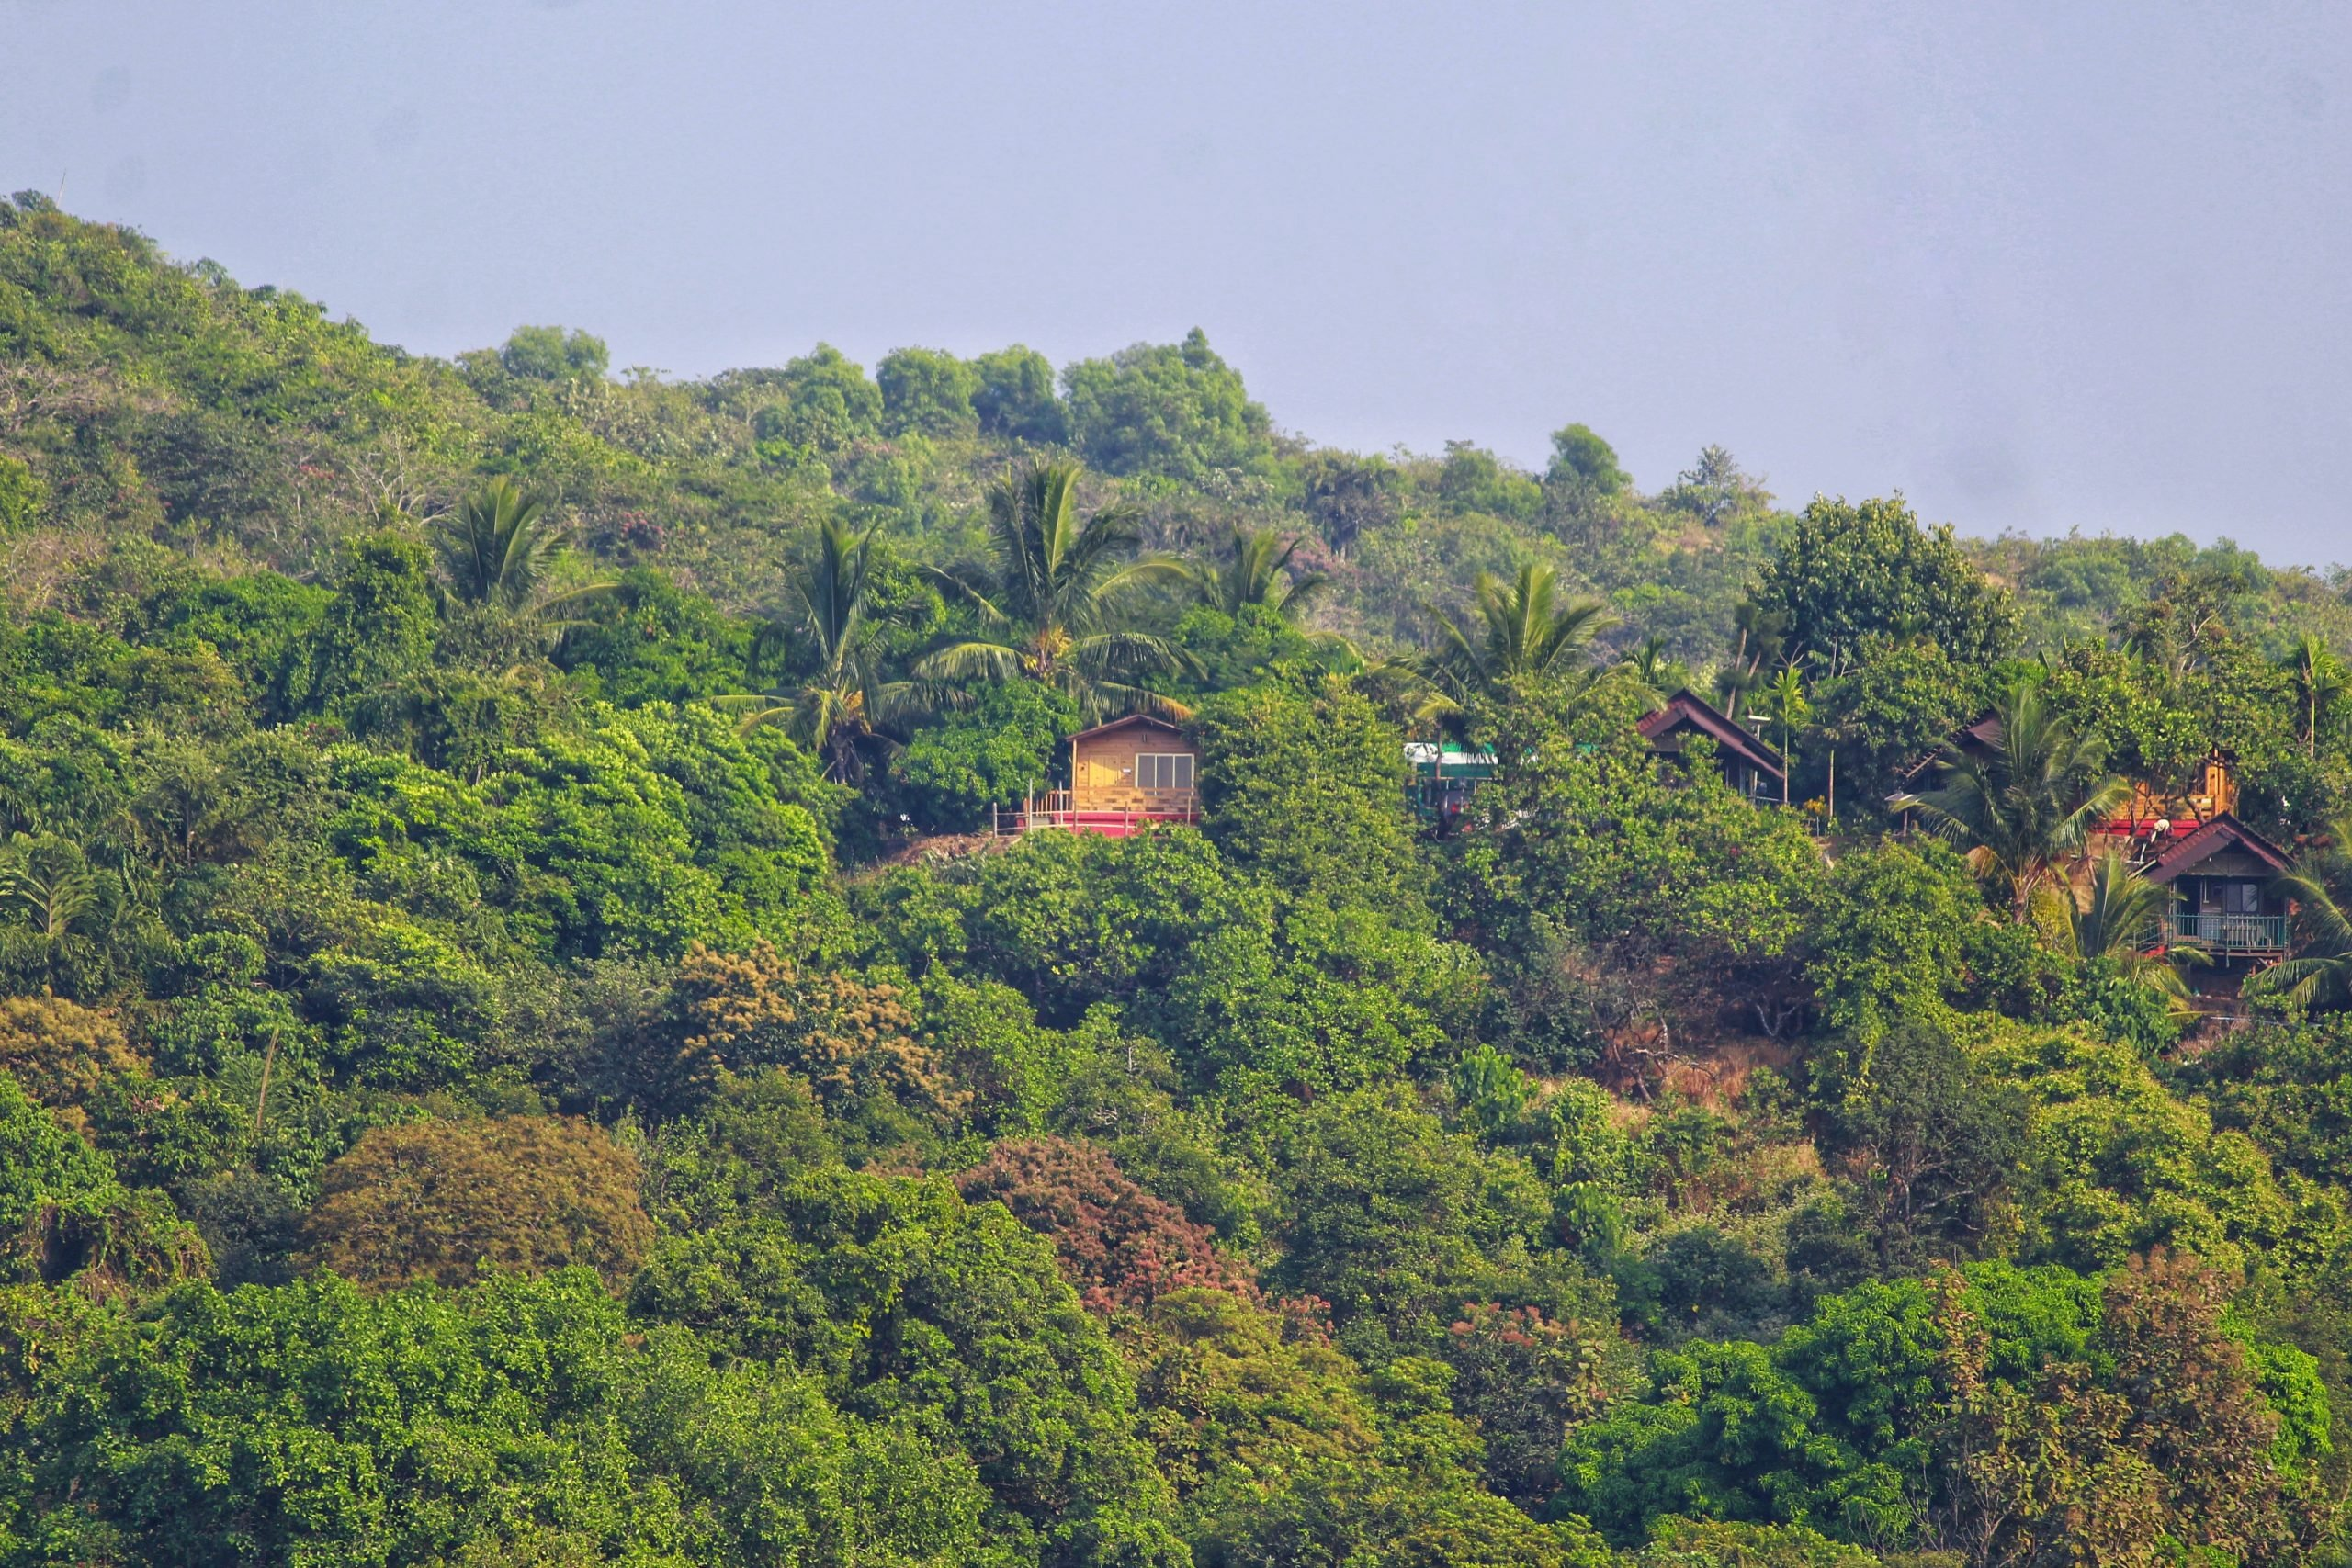 Home among greenery